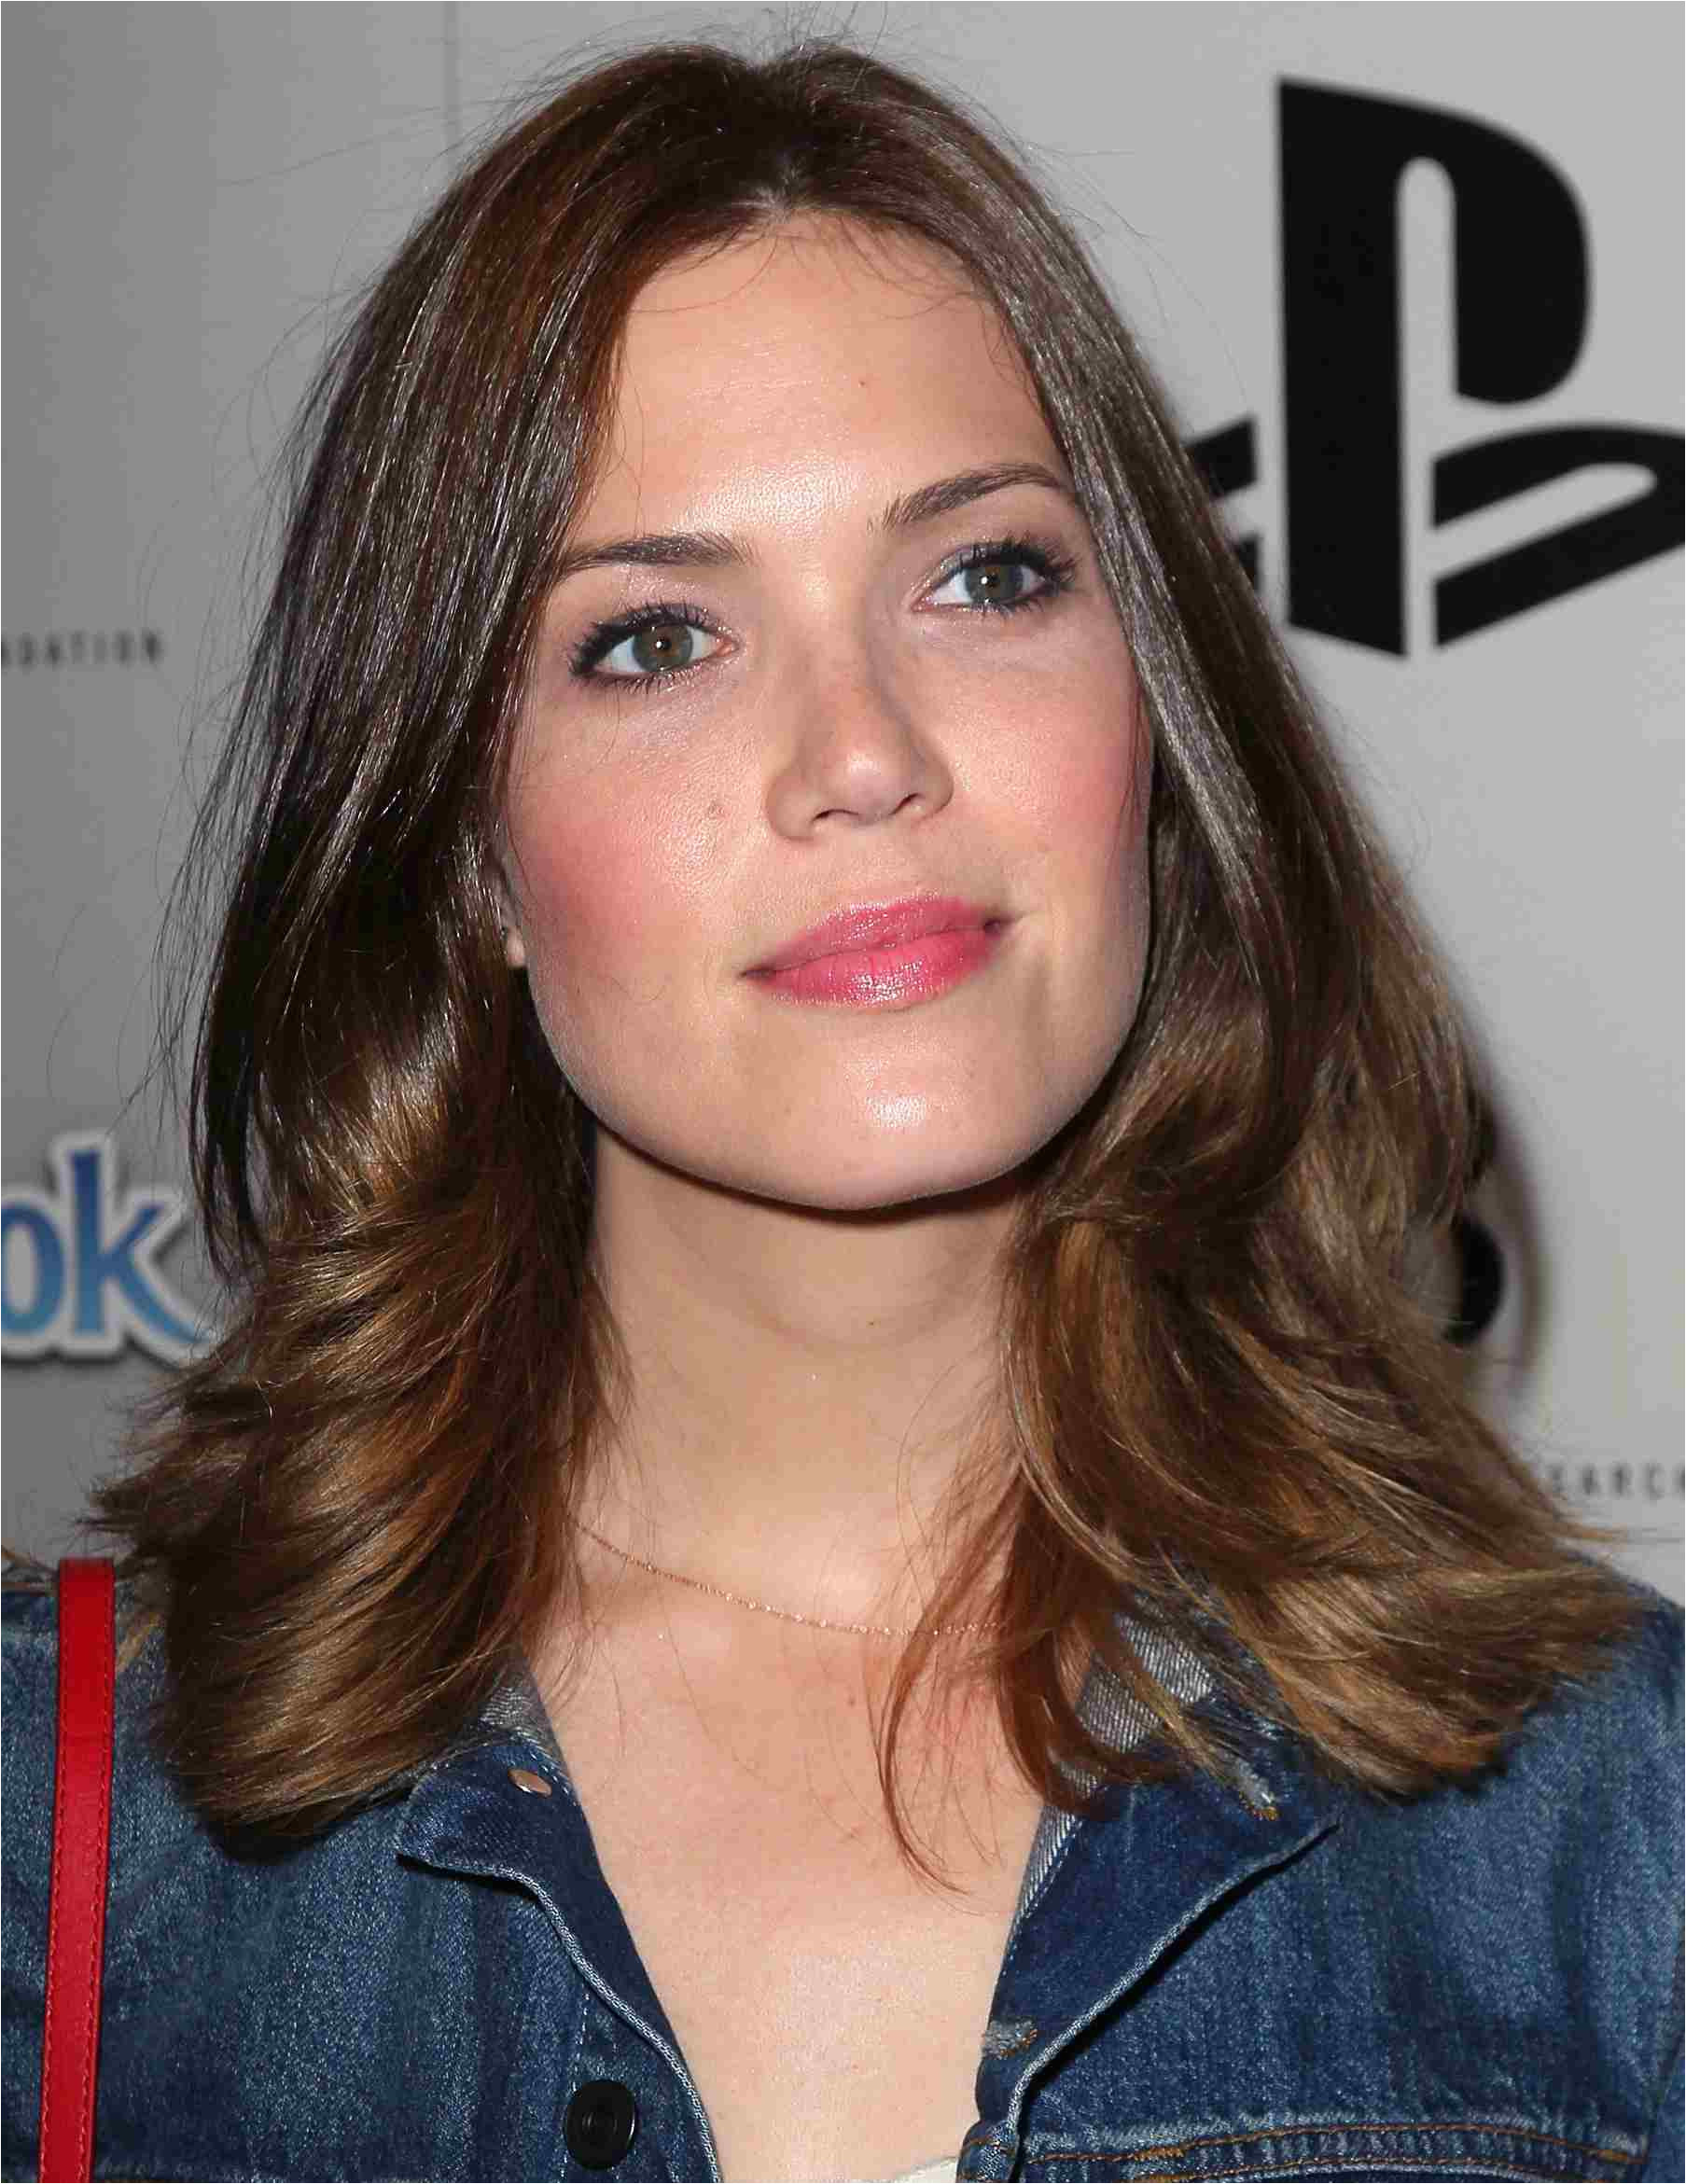 Hairstyles for Women with Square Faces the Best and Worst Hairstyles for Square Shaped Faces